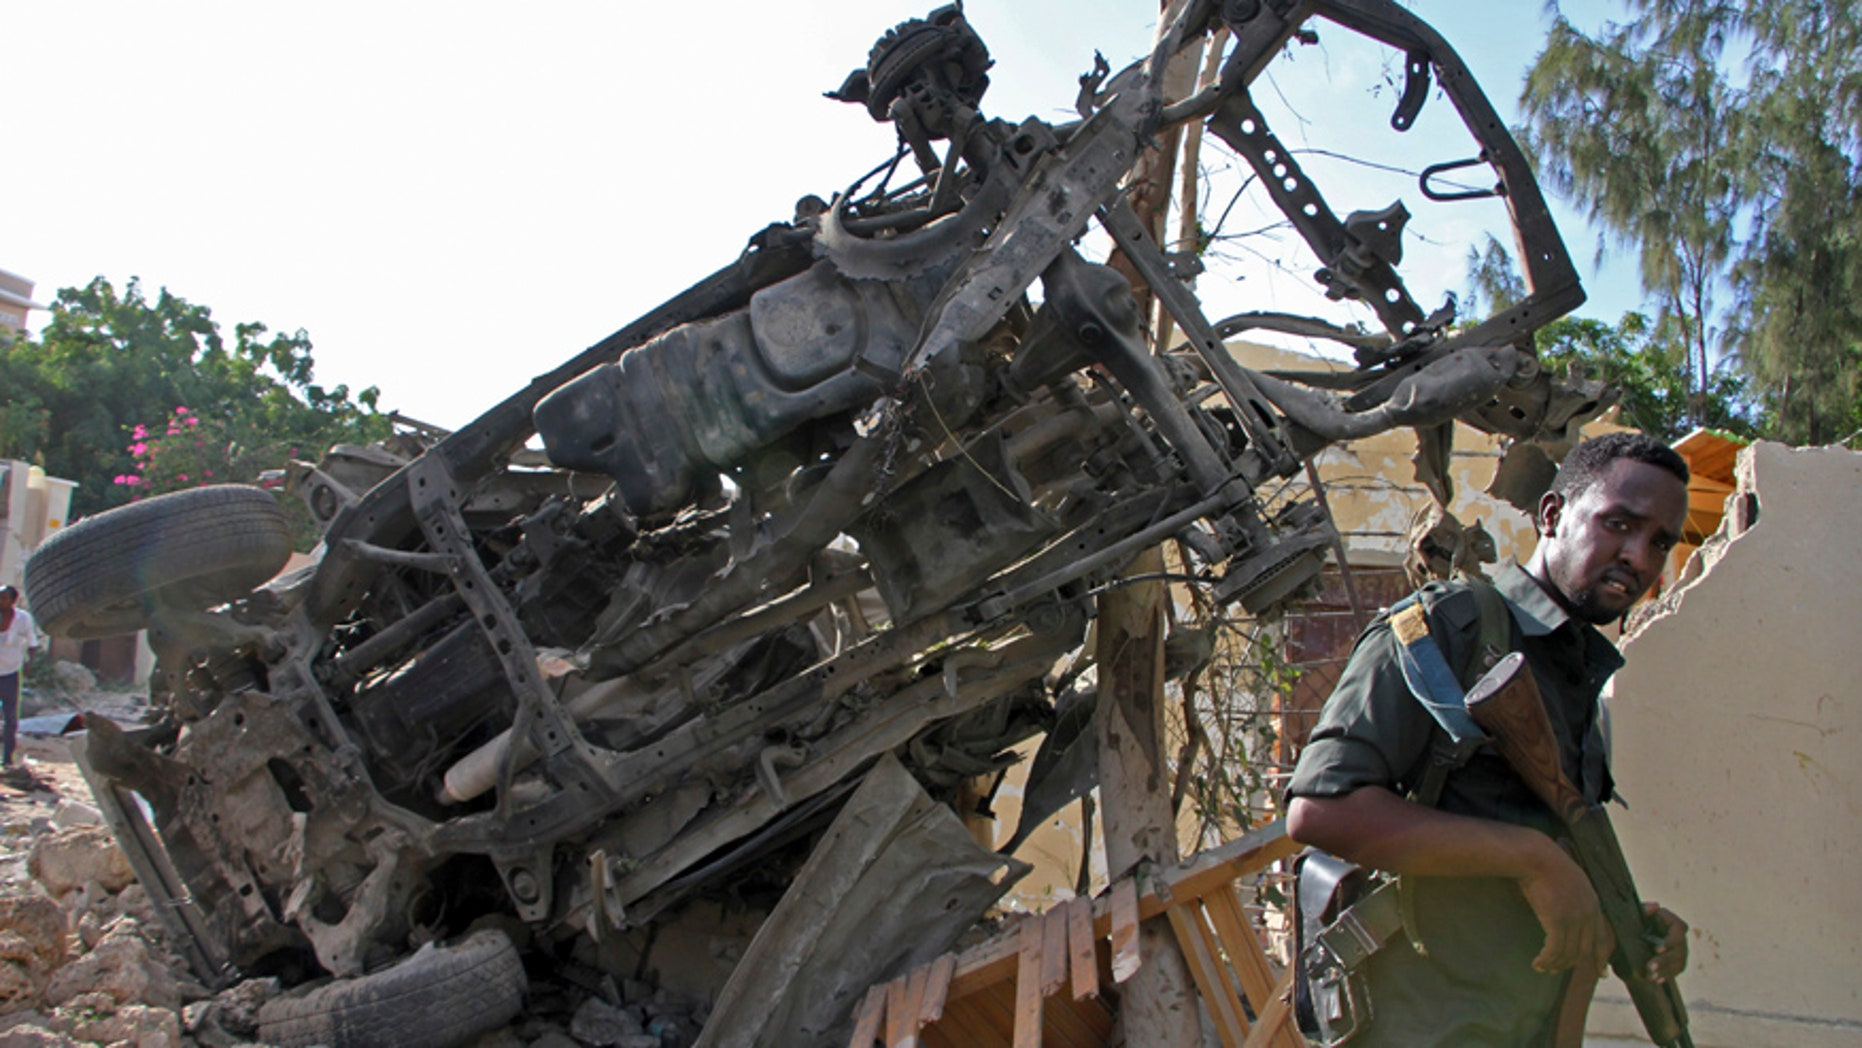 """A Somali soldier stands near the wreckage from a car bomb blast and gun battle targeting a restaurant in Mogadishu, Somalia, Thursday, June 15, 2017. Somalia's security forces early Thursday morning ended a night-long siege by al-Shabab Islamic extremists at the popular """"Pizza House"""" restaurant in the capital. (AP Photo/Farah Abdi Warsameh)"""